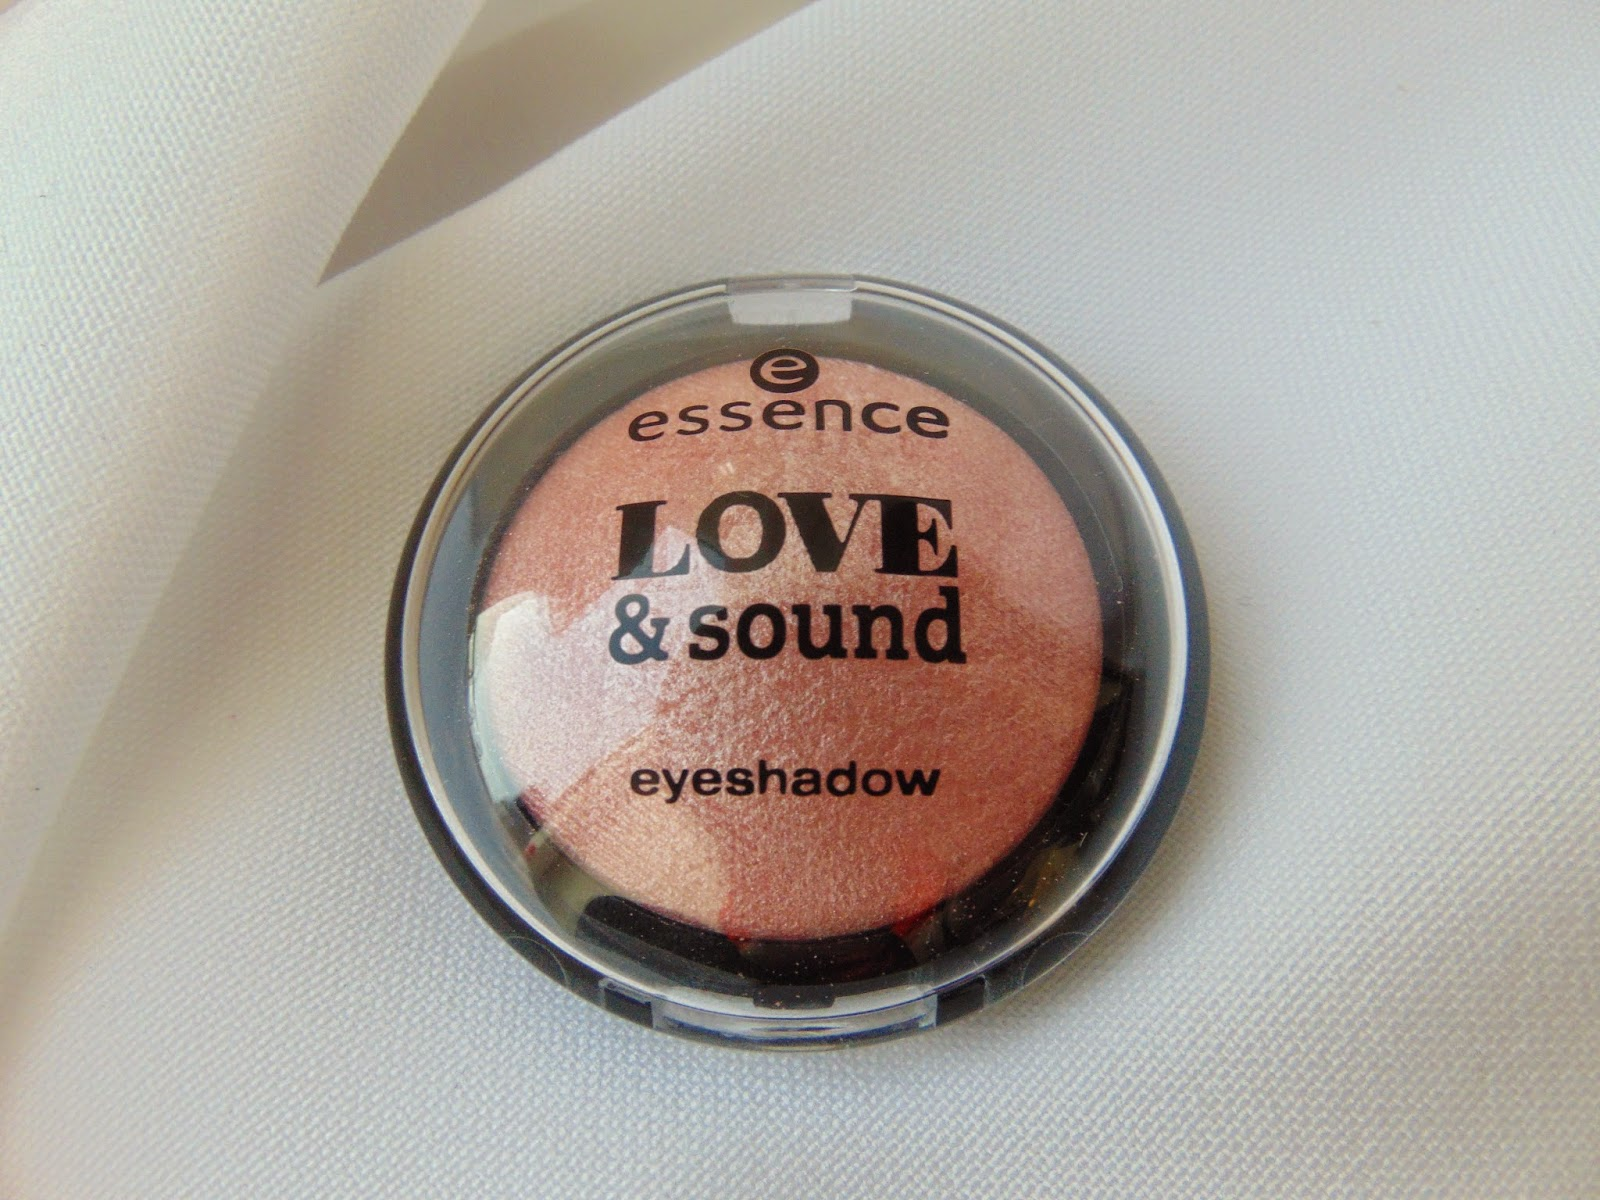 Love & Sound Eyeshadow - 02 Make Life a Festival - www.annitschkasblog.de